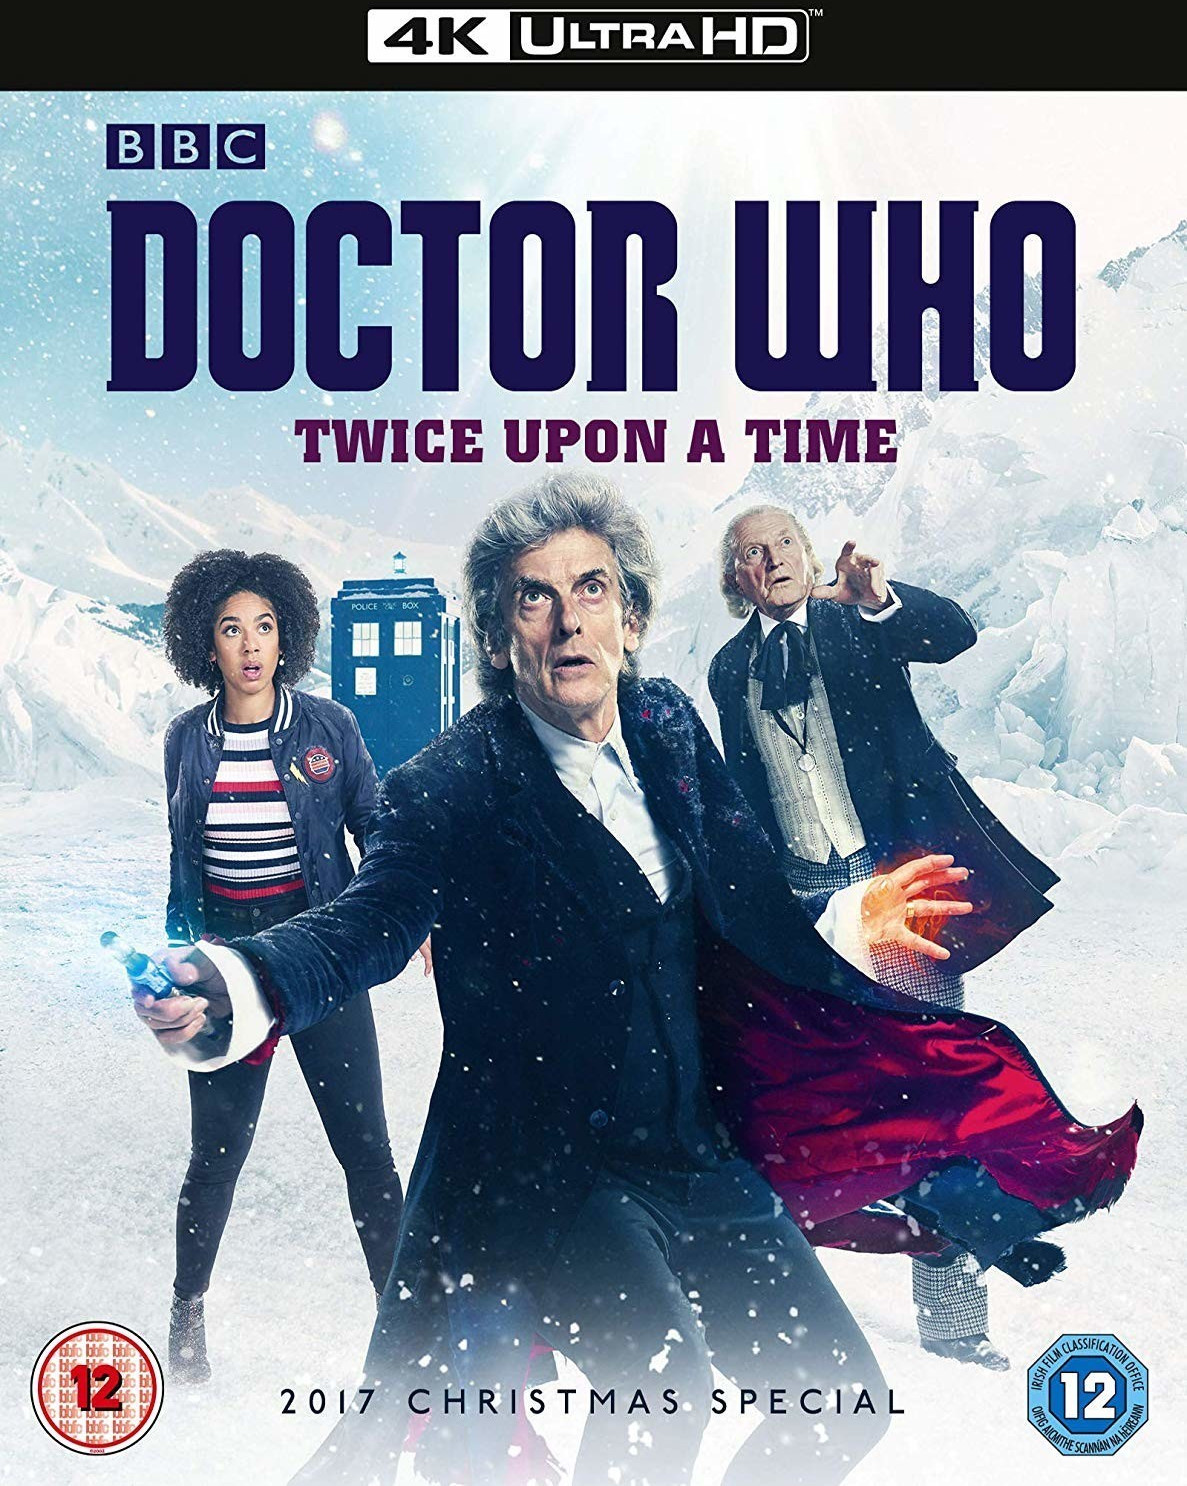 Image of Doctor Who - Twice Upon A Time (2017 Christmas Special) (4K UHD) [Blu-ray]